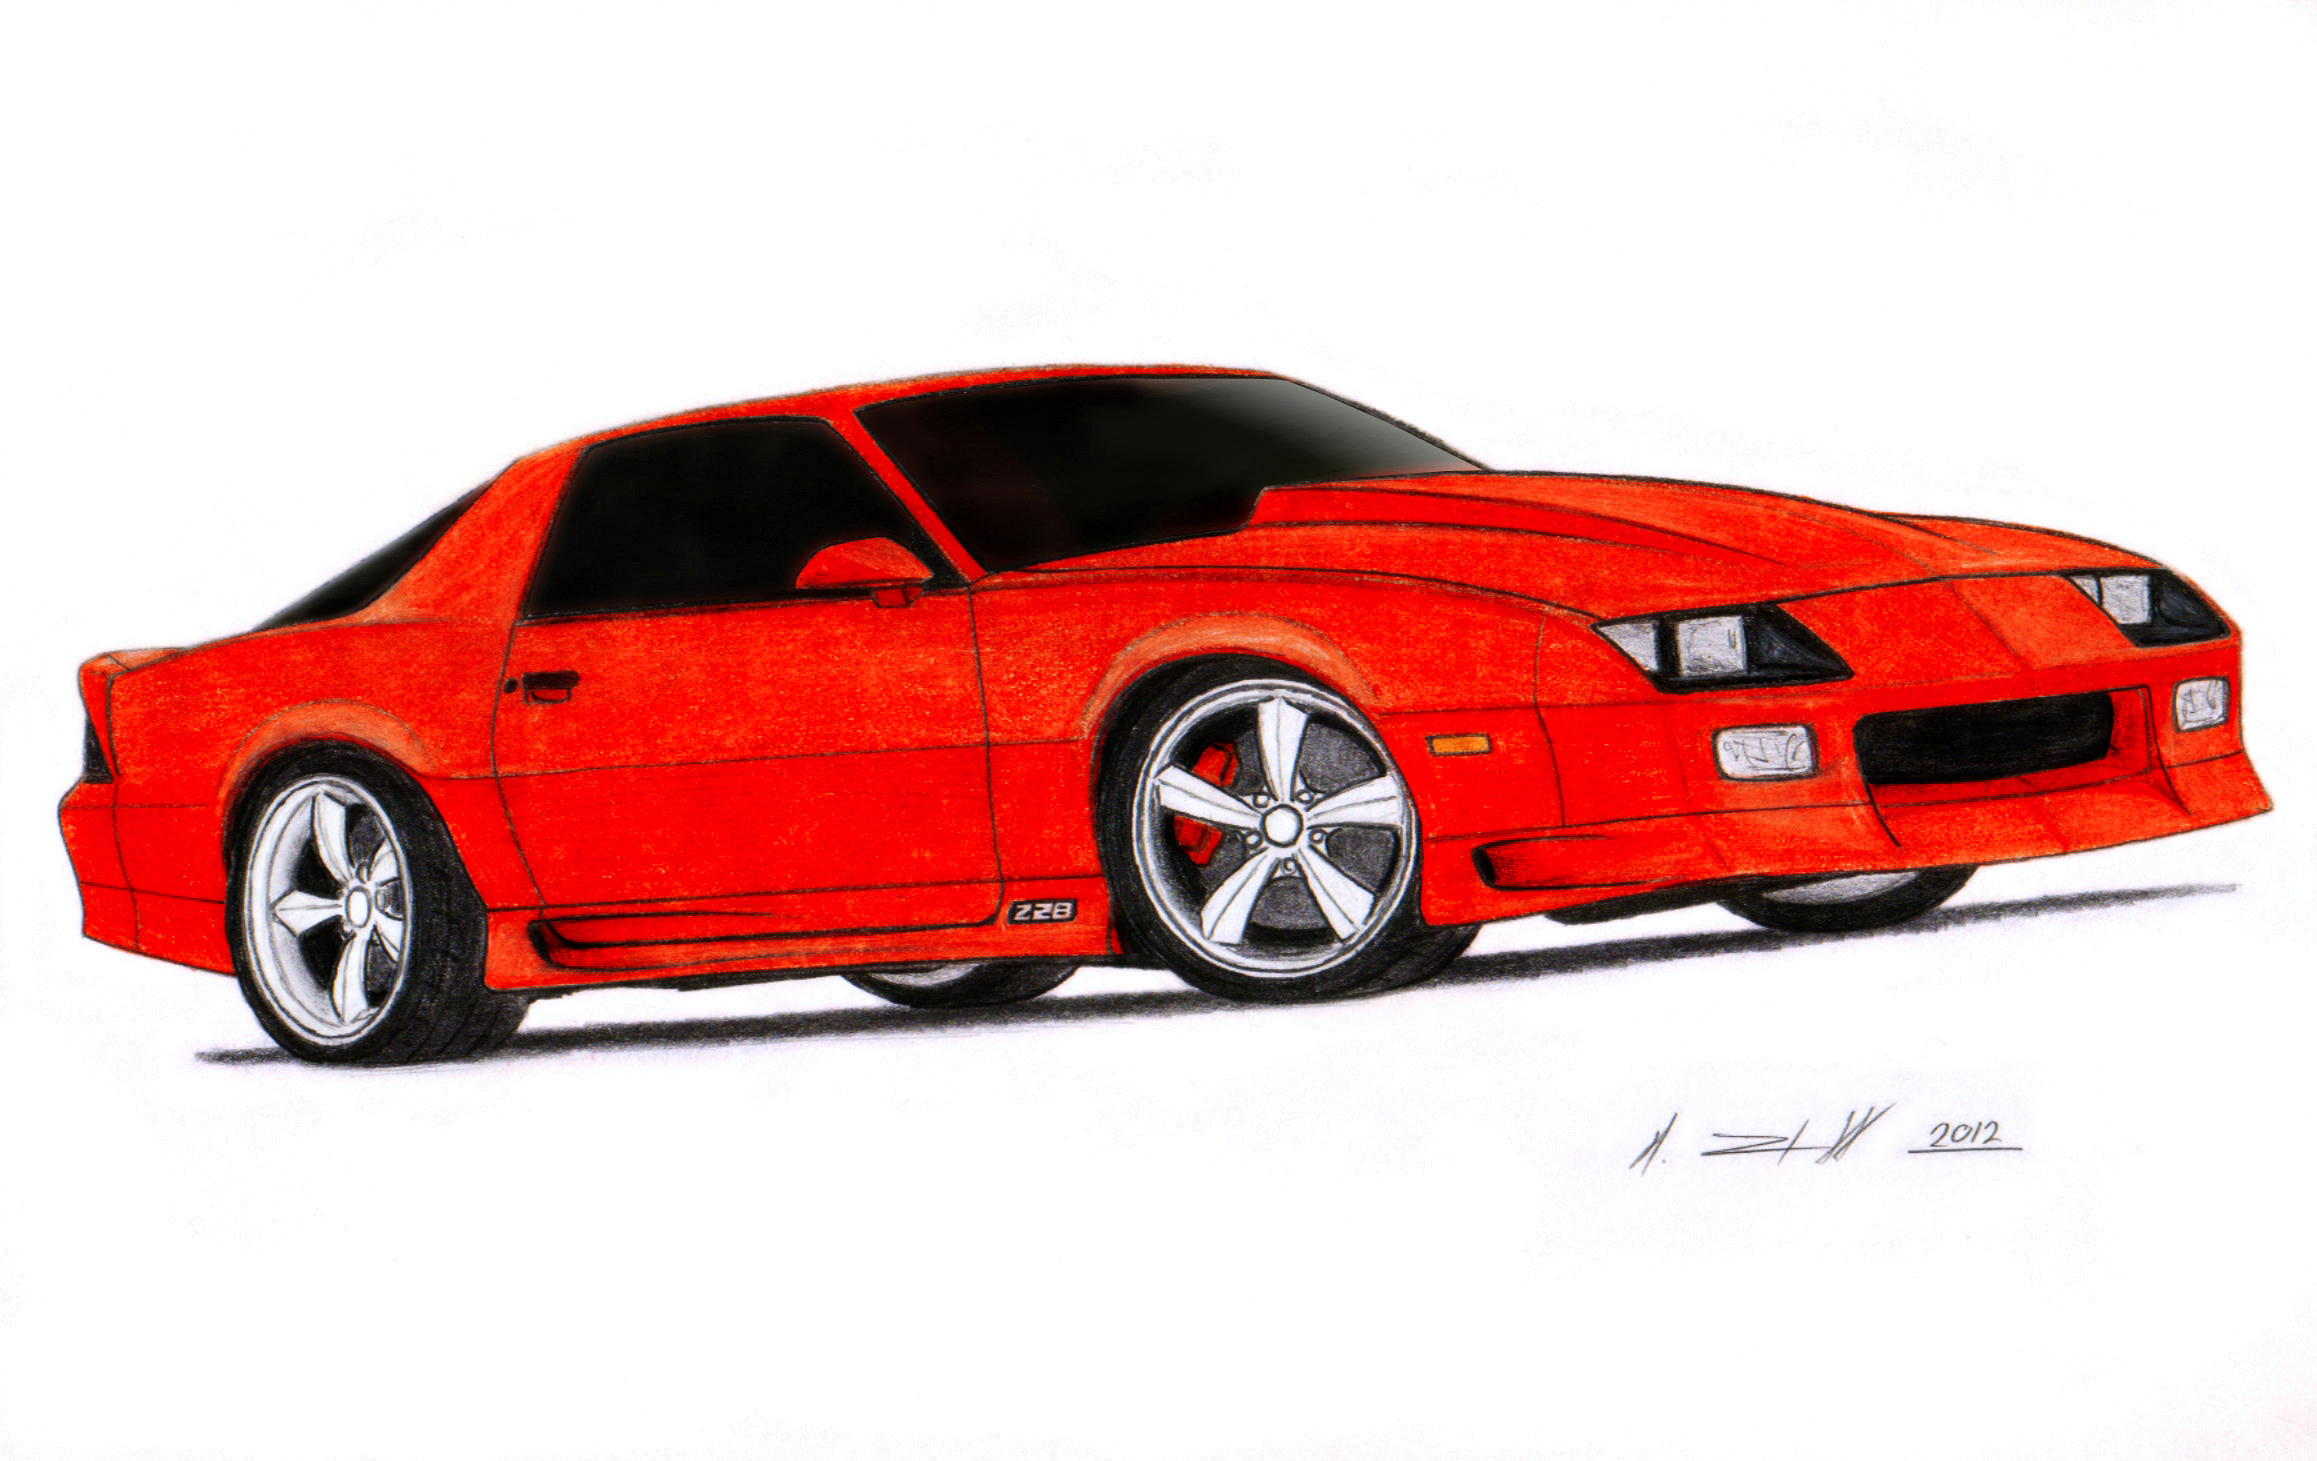 Chevrolet Camaro Iroc Z Drawing By Vertualissimo On